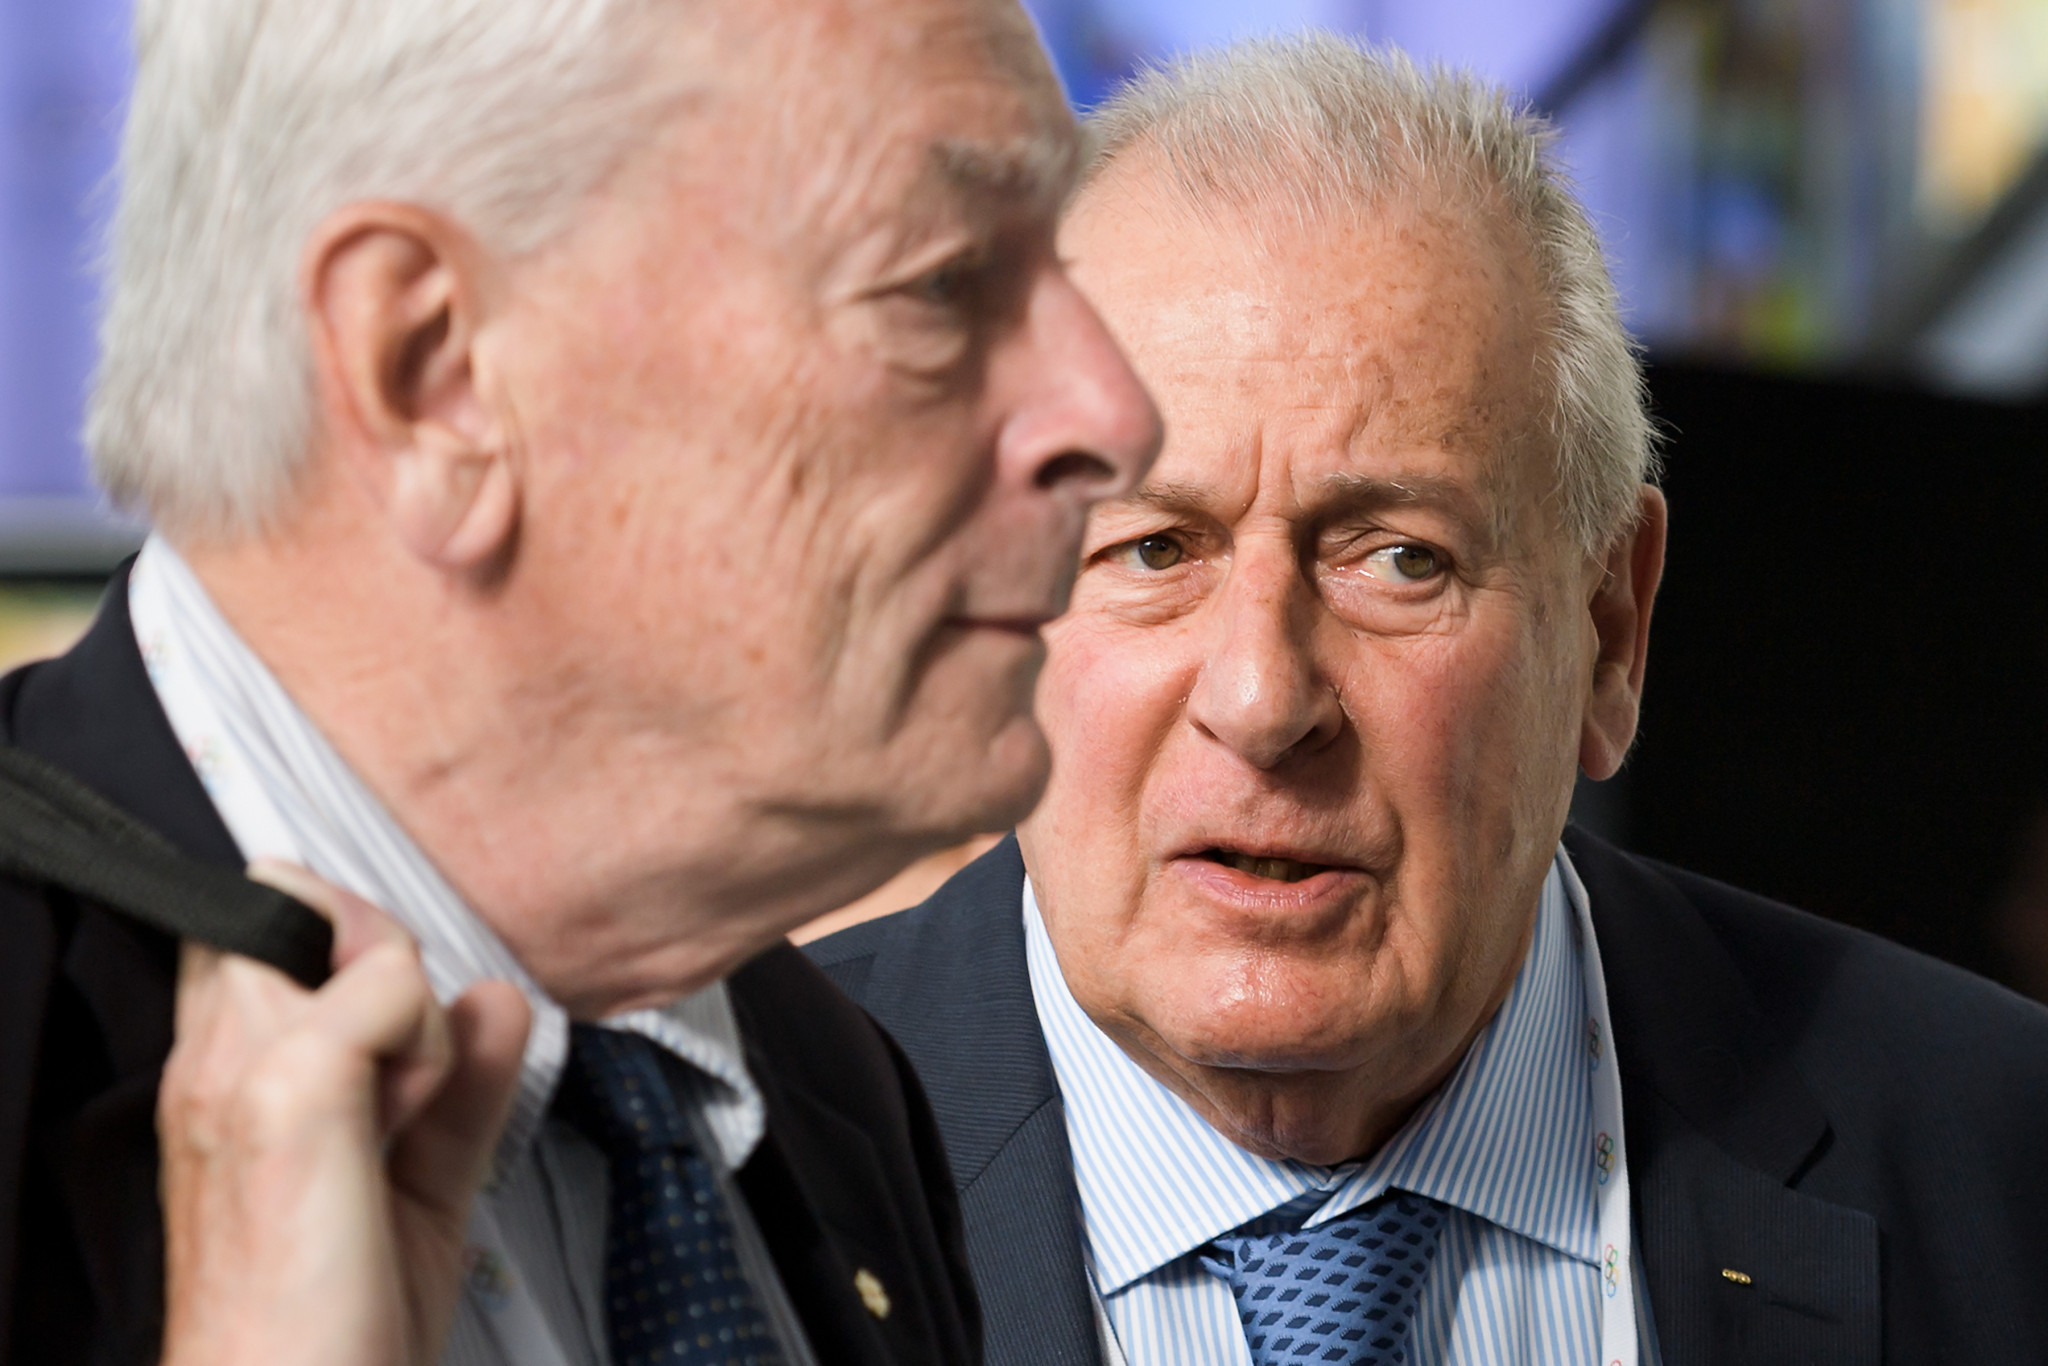 IOC member Dick Pound has claimed it was obvious why FIFA had not brought sanctions against Russian players ©Getty Images